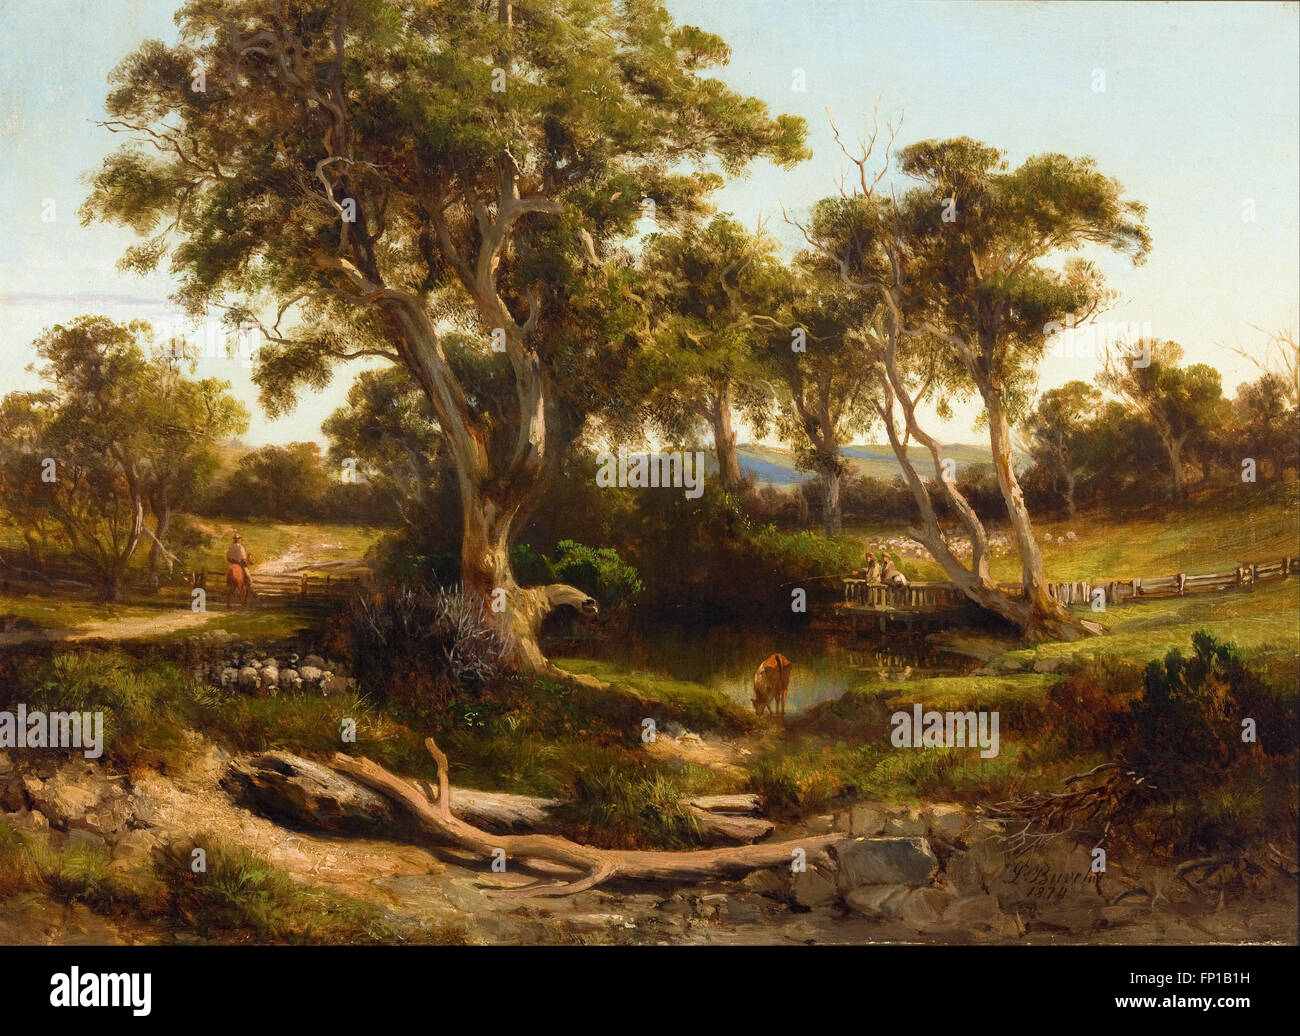 Louis Buvelot - Sheep wash in the western district - Stock Image